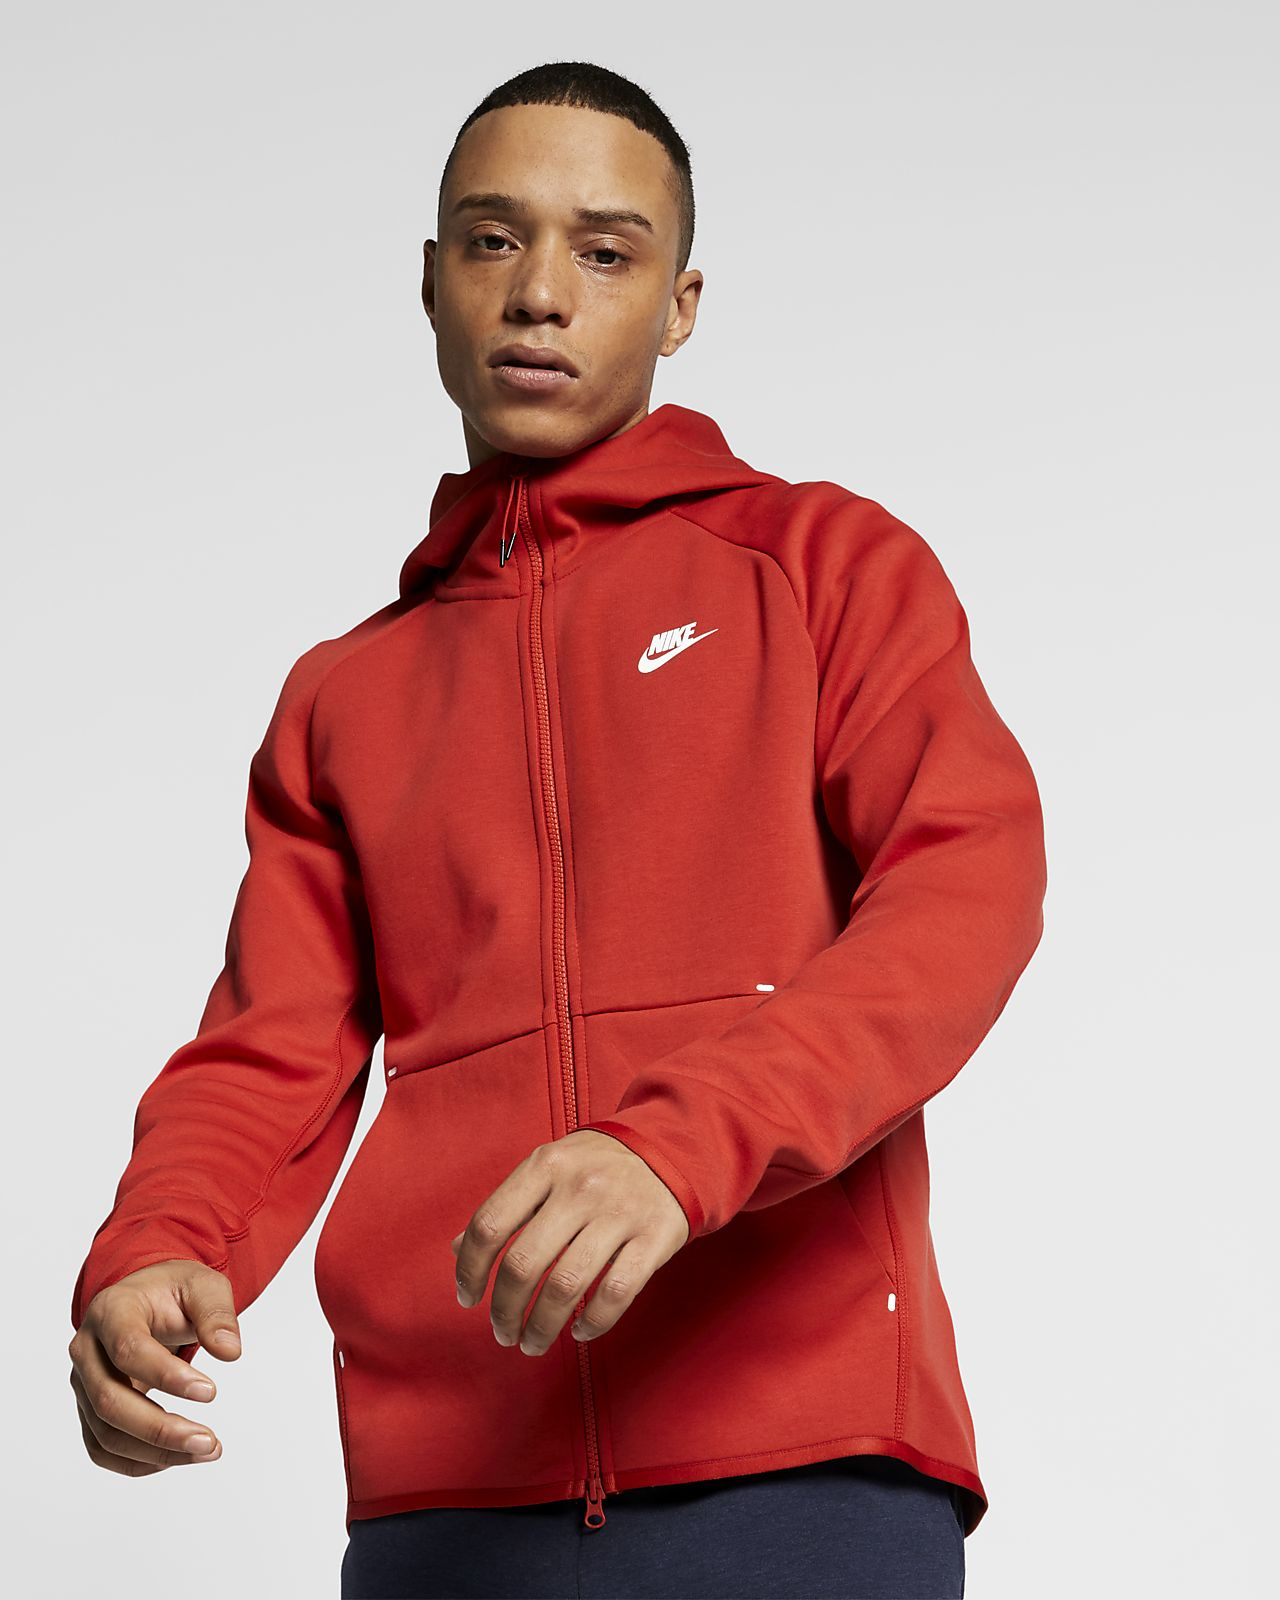 87242215837 Nike Sportswear Tech Fleece Men's Full-Zip Hoodie. Nike.com